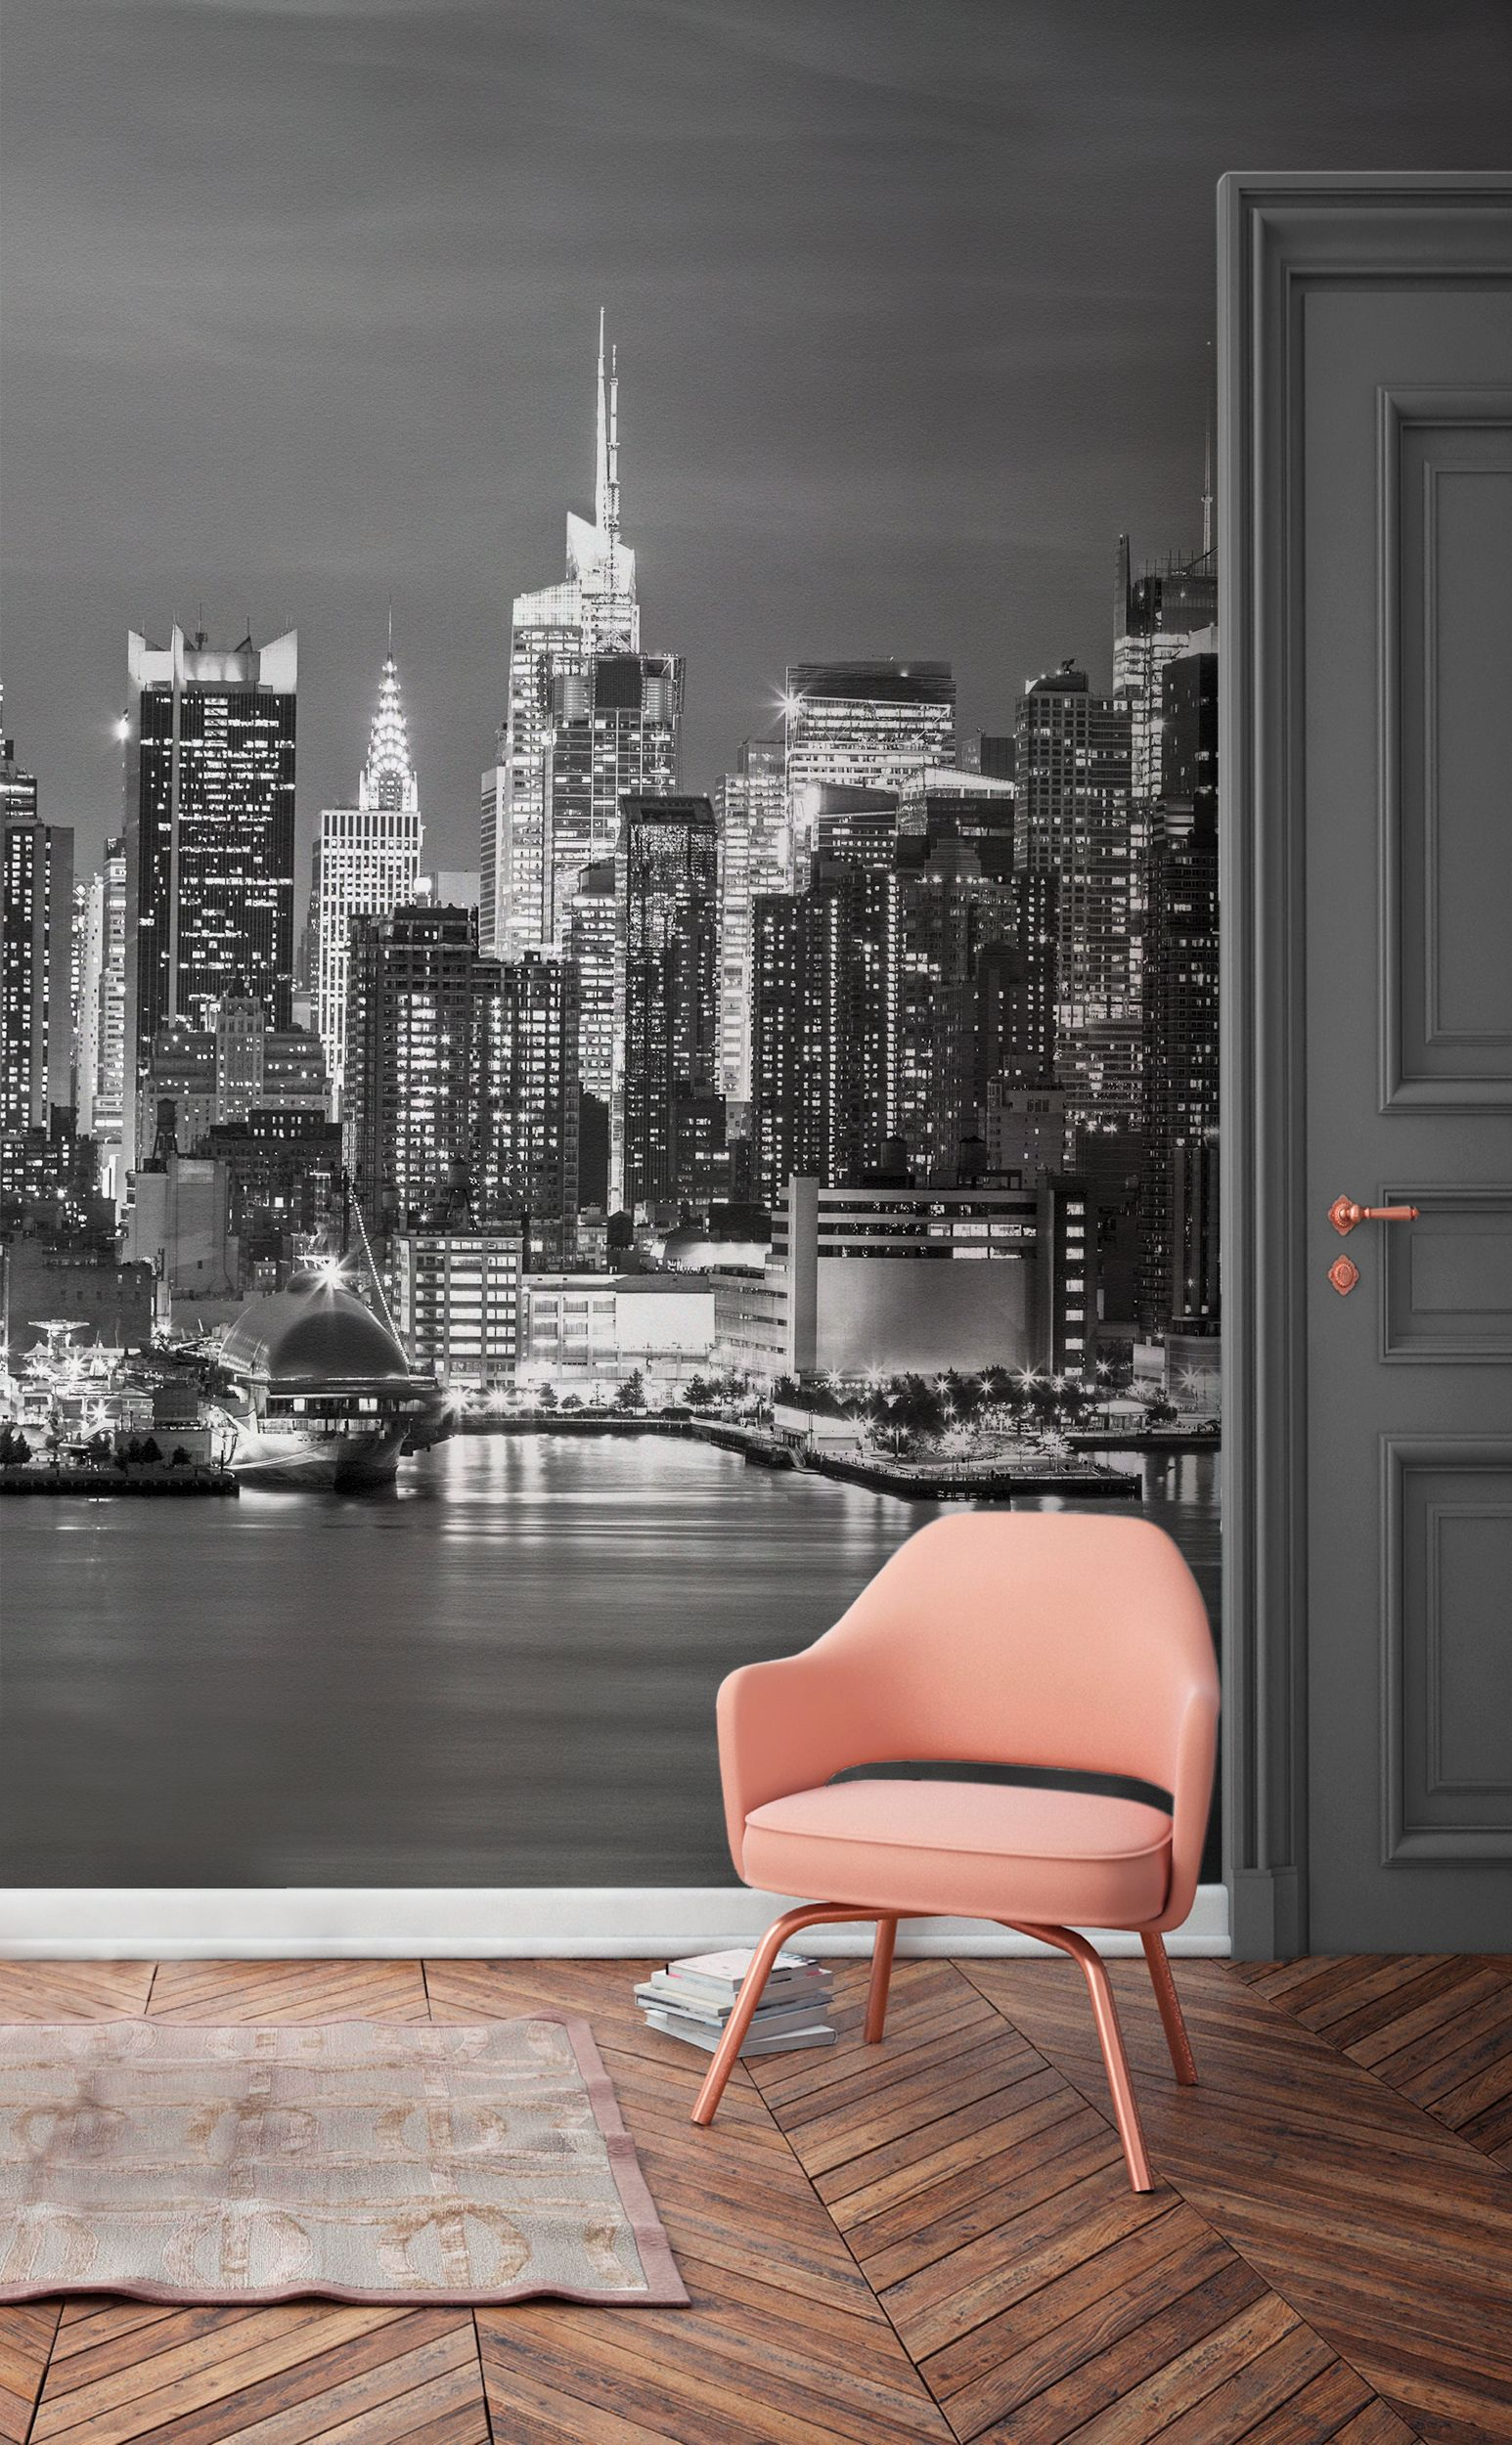 New York Landscape Wall Mural MuralsWallpapercouk Wallpaper - City lights wallpaper for bedroom